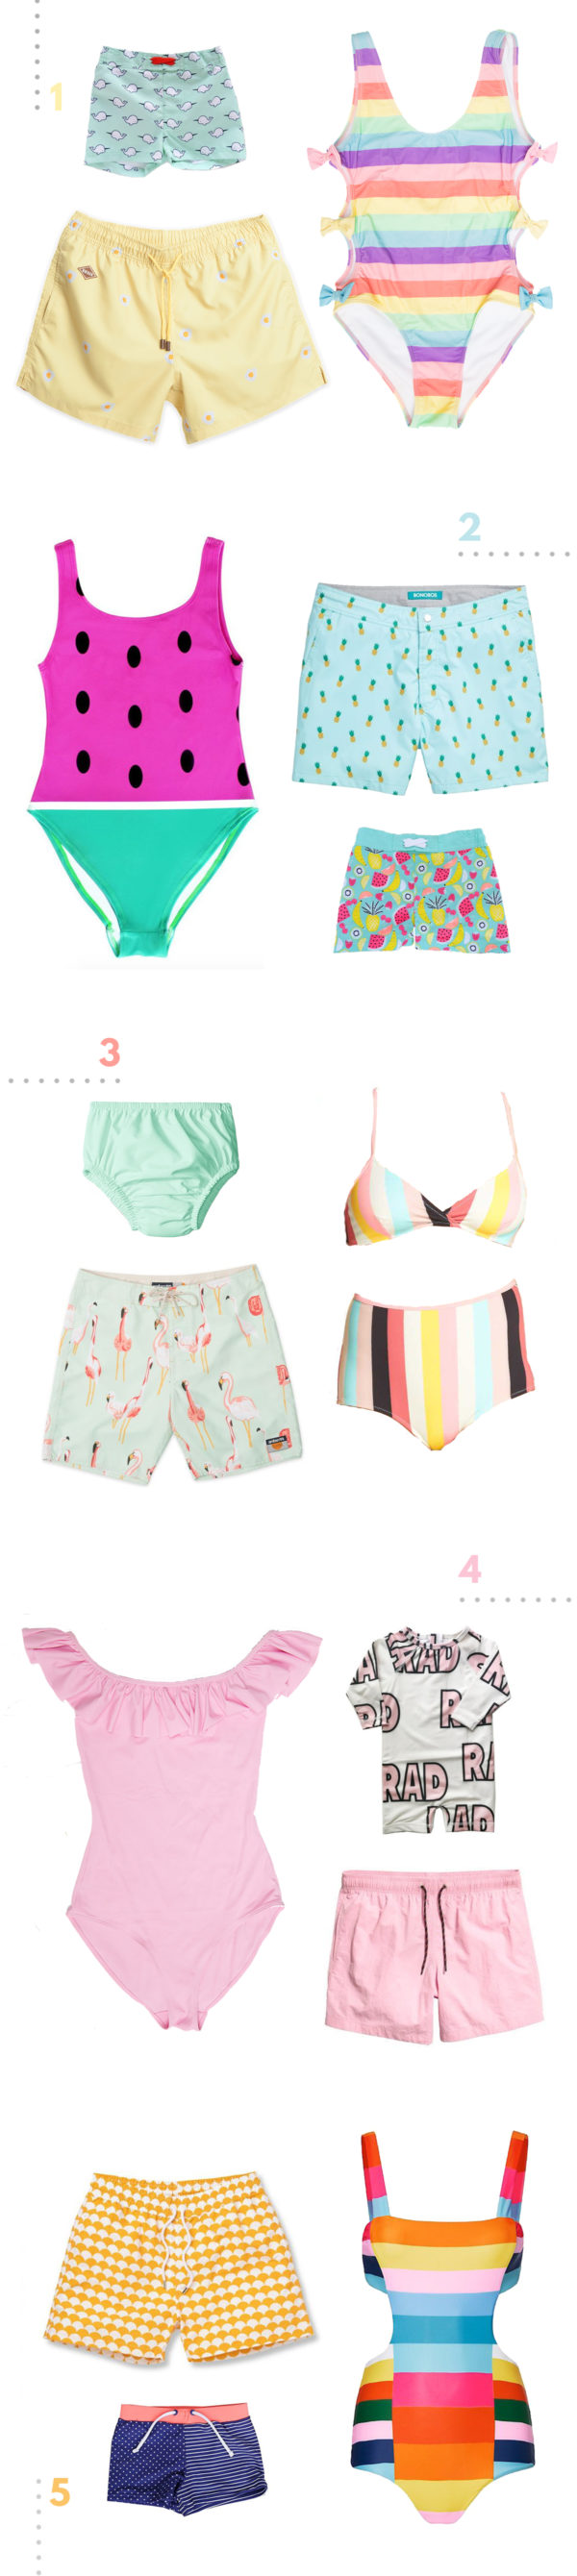 Fave Swimsuits for the Family!